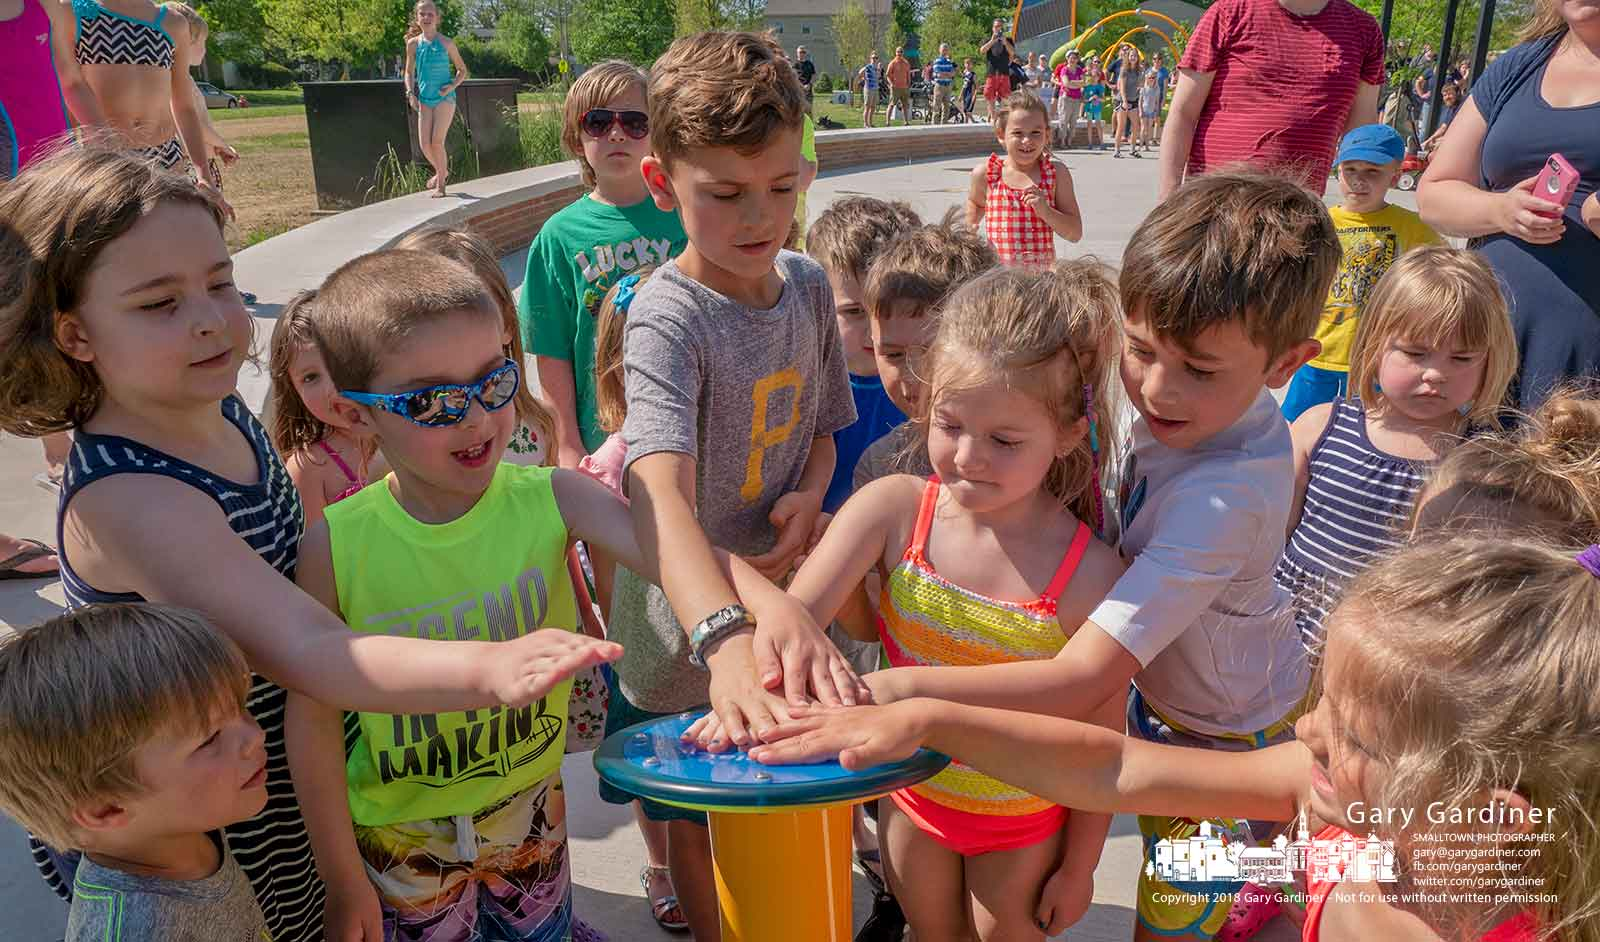 Kids crowd the waterproof button preparing to start the new splash pad water fountain at the grand opening of the new Hanby Park behind the library. My final Photo for May 12, 2018.